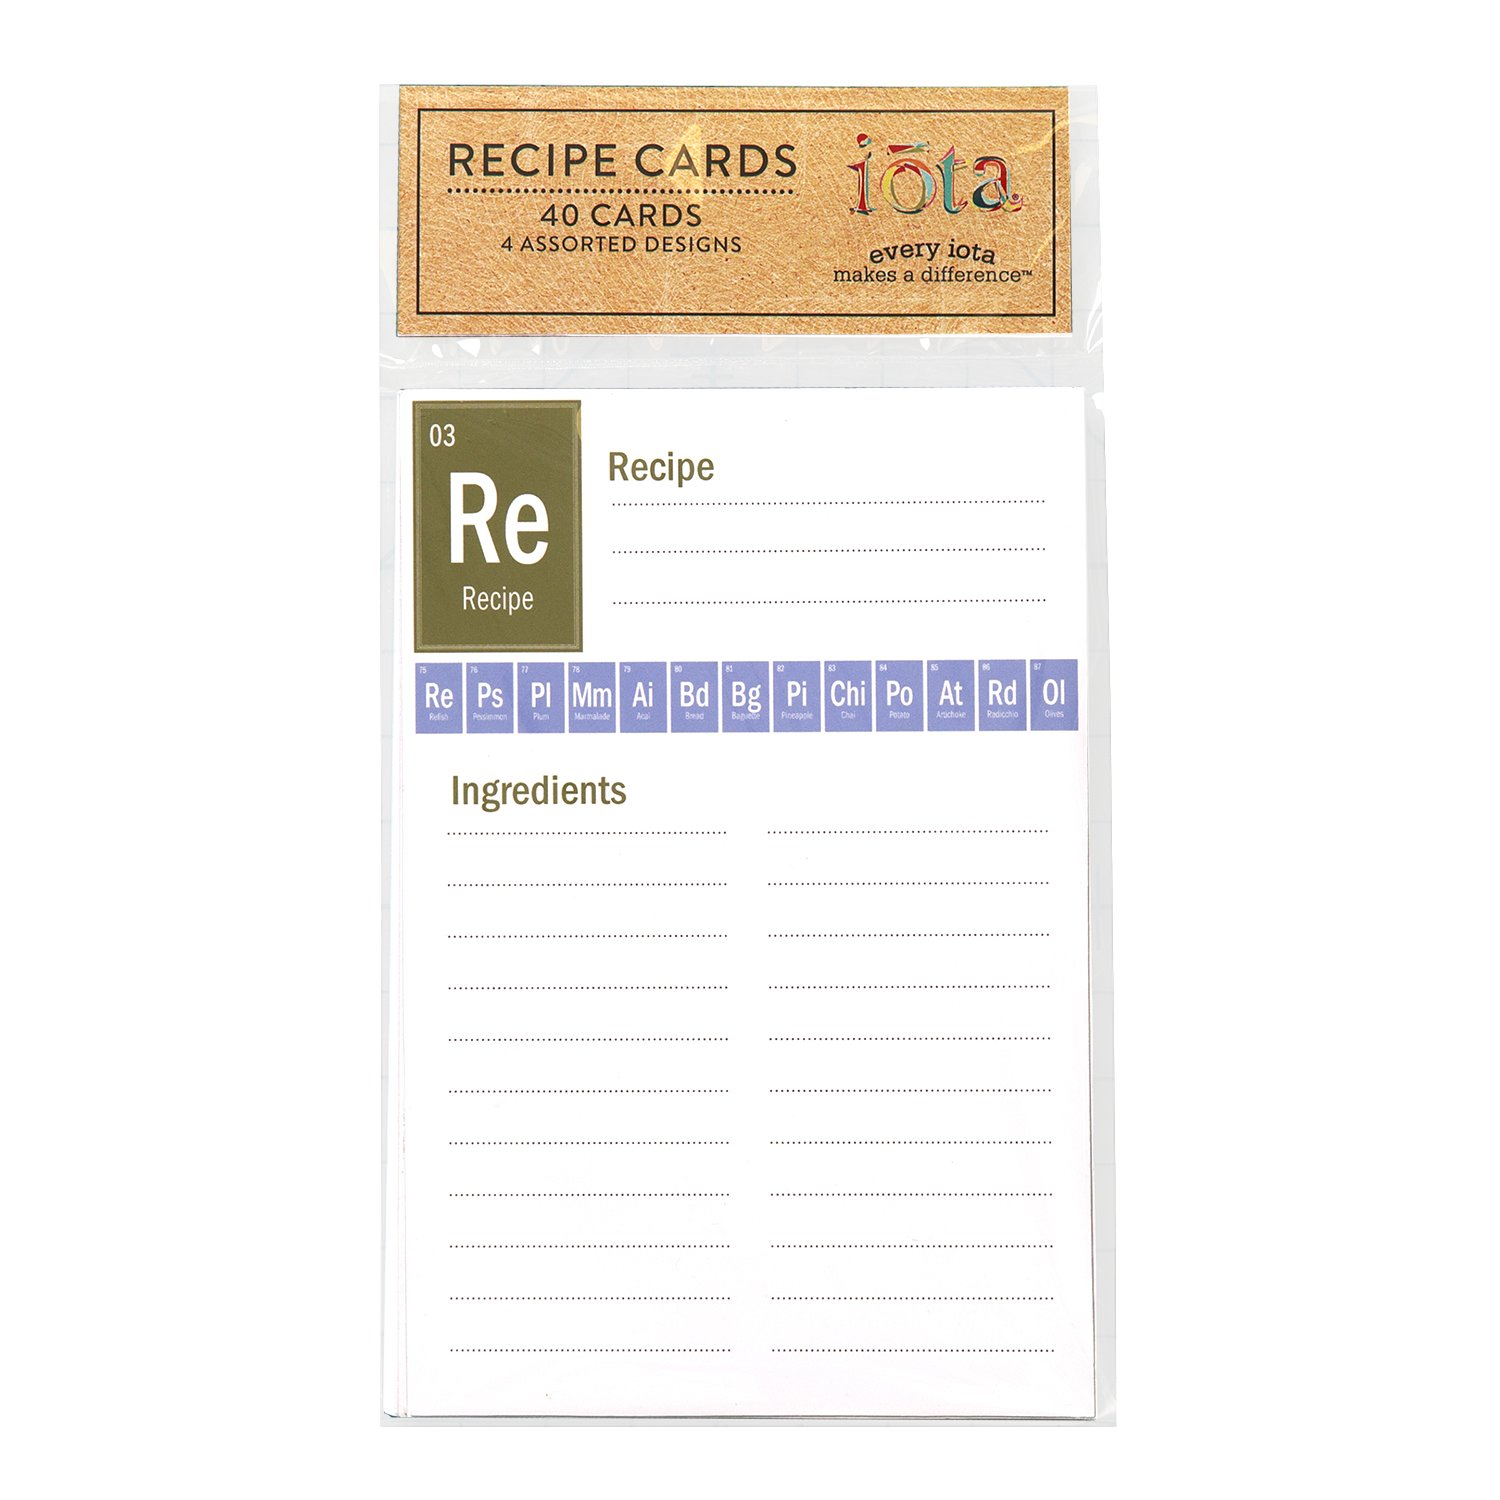 By Iota C.R Gibson 40 Count Recipe Cards Cards Measure 4 x 6 Periodic Table Lined Back To Front